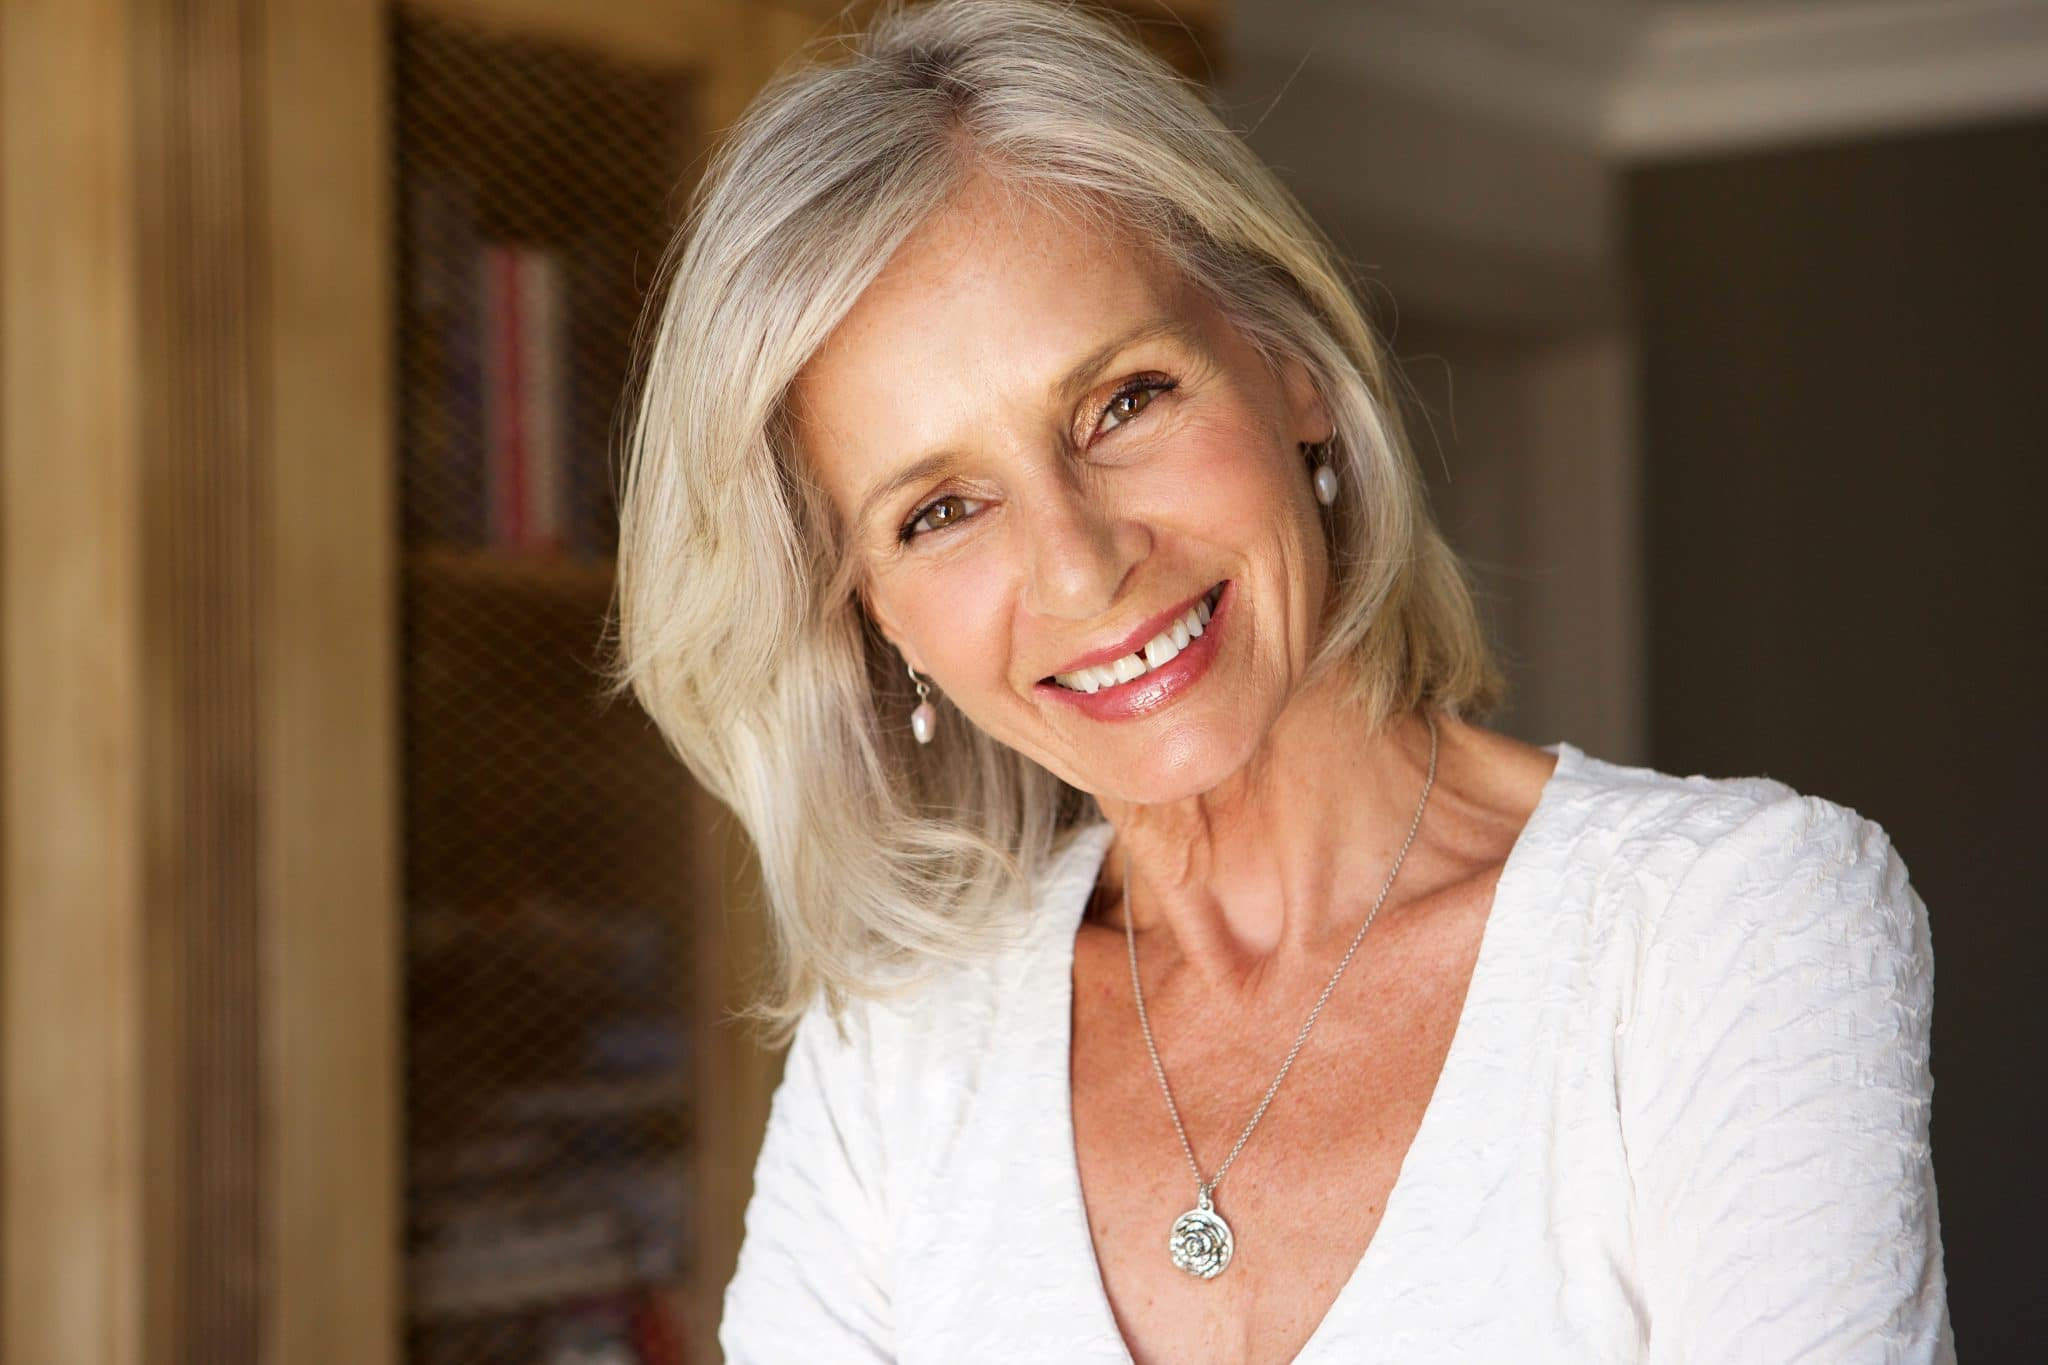 Older woman with white shirt on smiling while tilting her head to the side